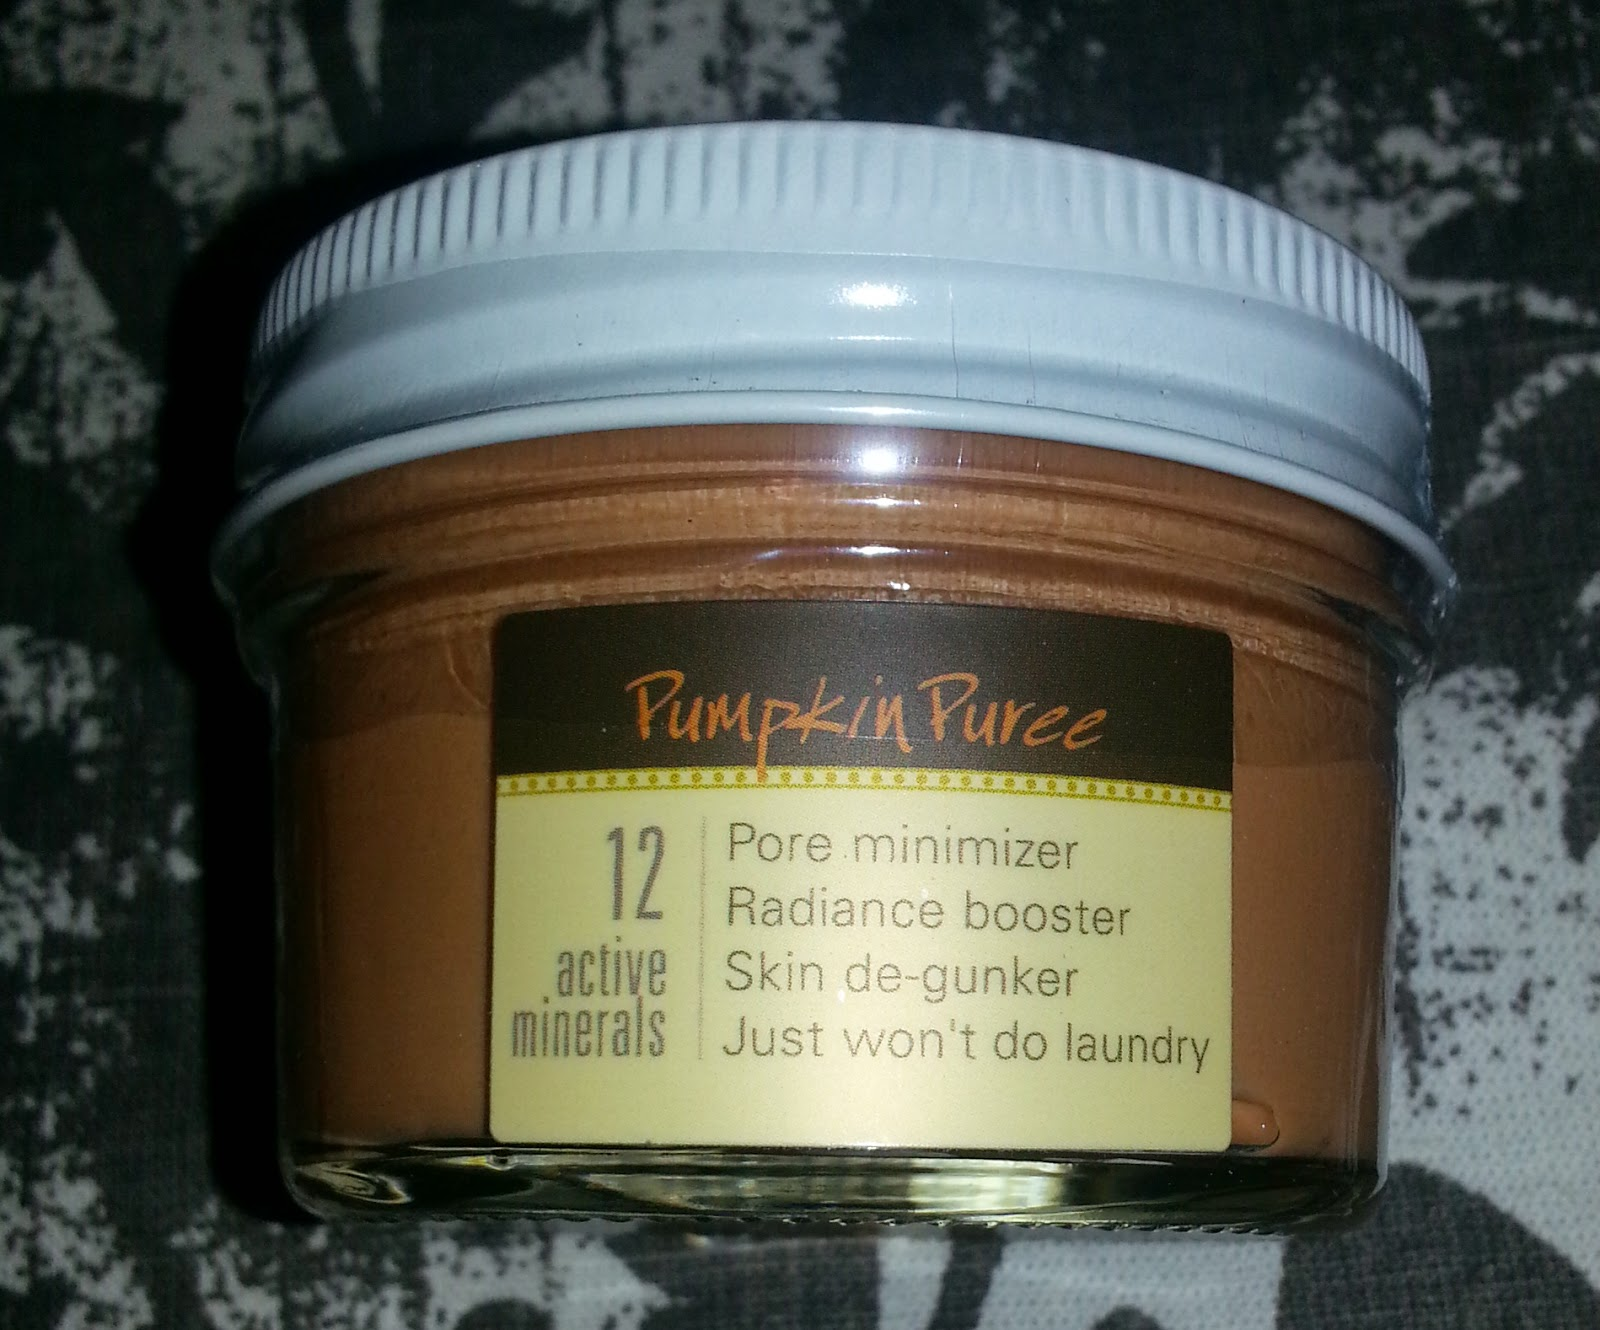 FarmHouse Fresh Splendid Dirt Nutrient Rich Mud Mask in Pumpkin Puree